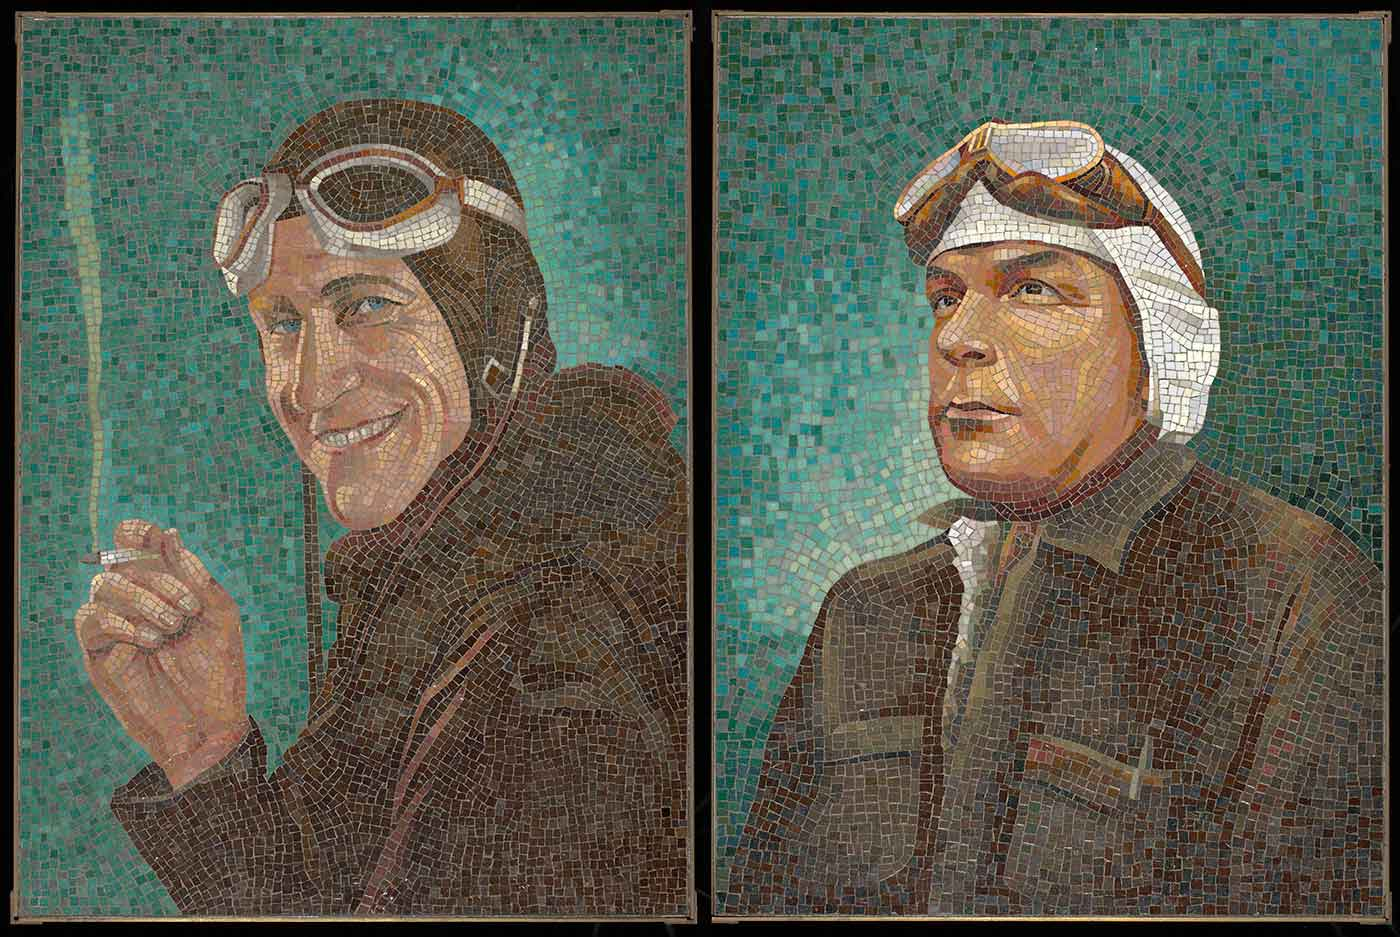 Mosaic portraits of Charles Kingsford Smith and Charles Ulm commissioned by Austin Byrne